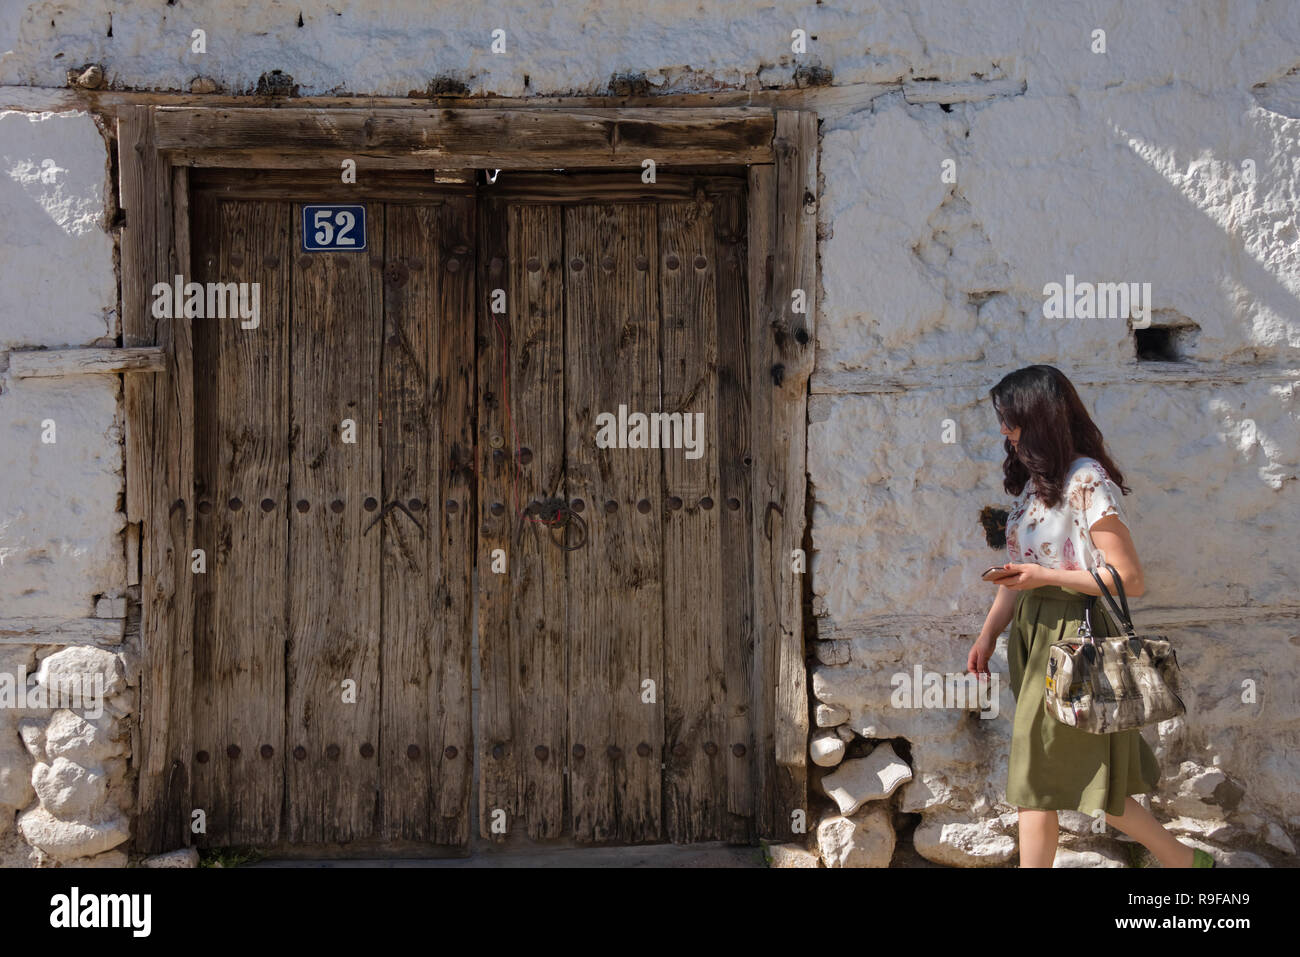 Woman passing by the wooden door of an old house, Prizren, Kosovo - Stock Image